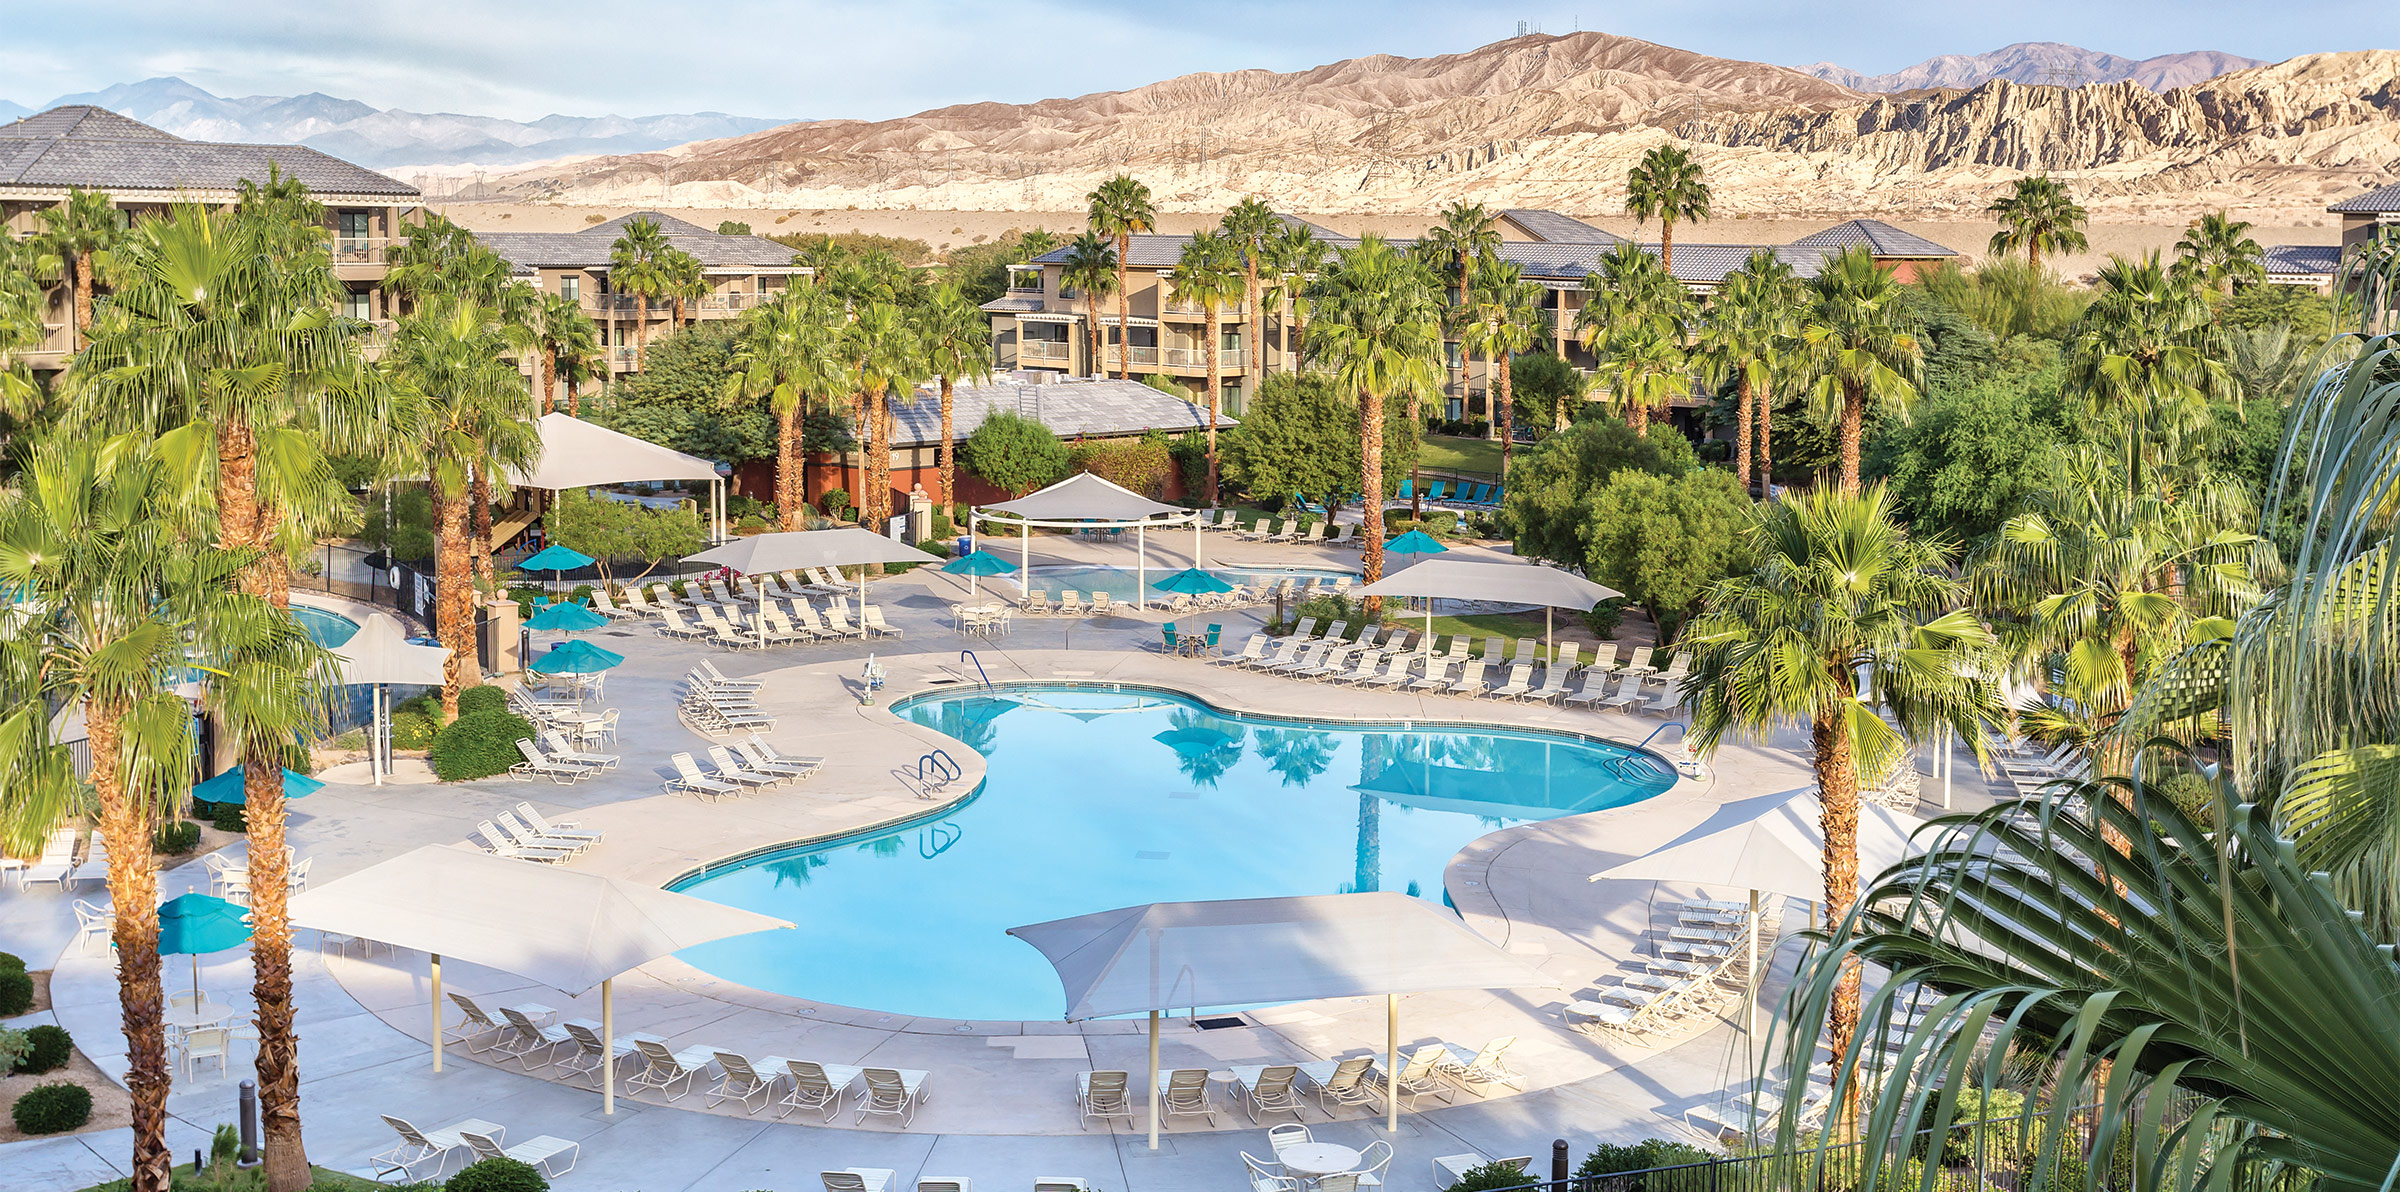 Apartment 1 Bedroom 1 Bath In Indio  CA   Palm Springs  5 miles from COACHELLA photo 18438441